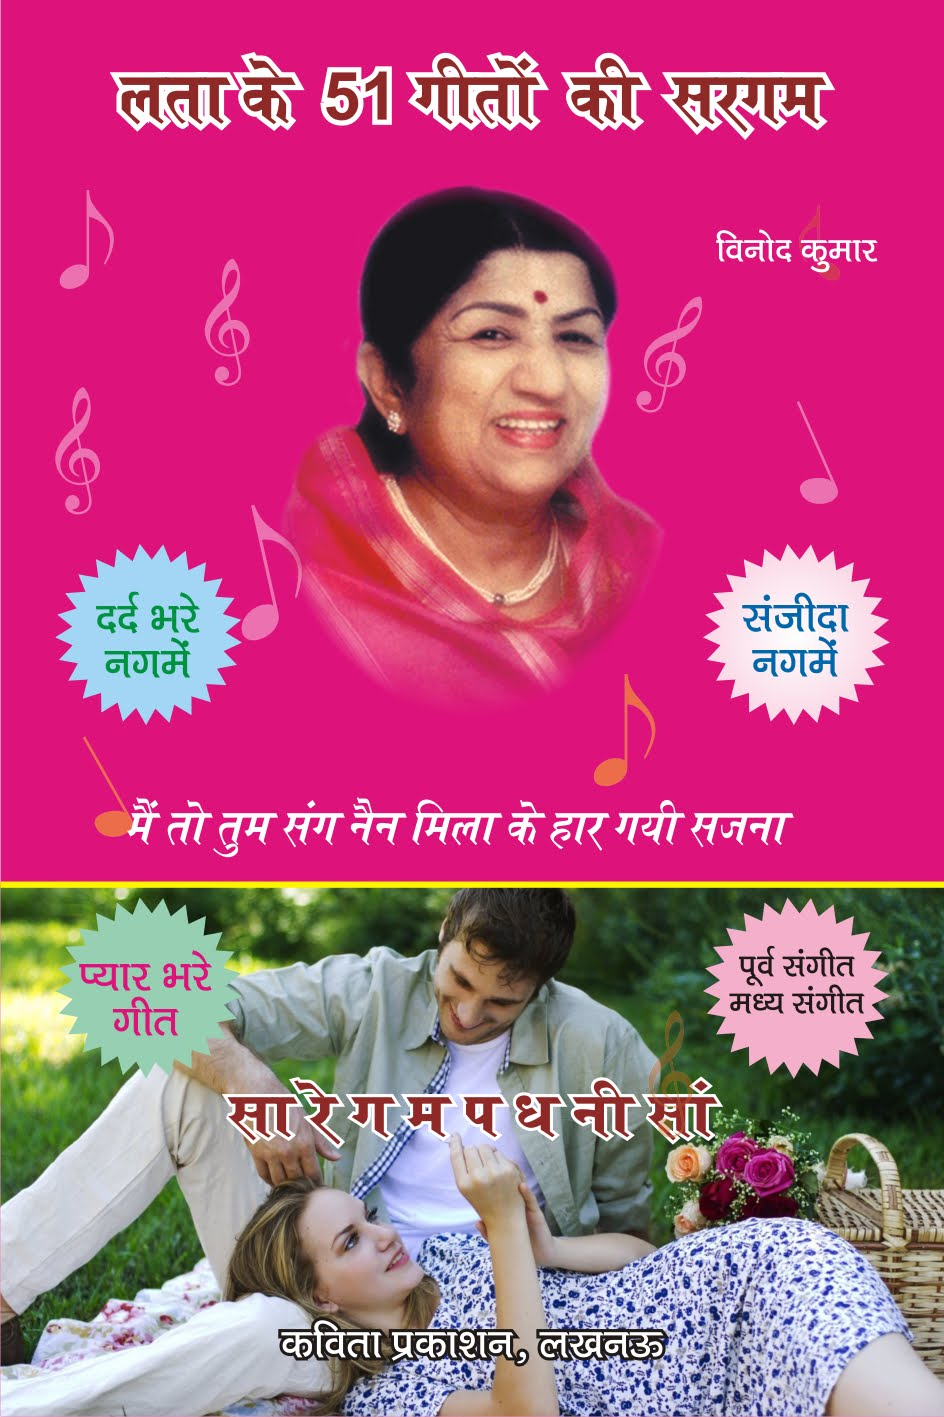 Lata ke 51 Geeton ki Sargam book in Hindi